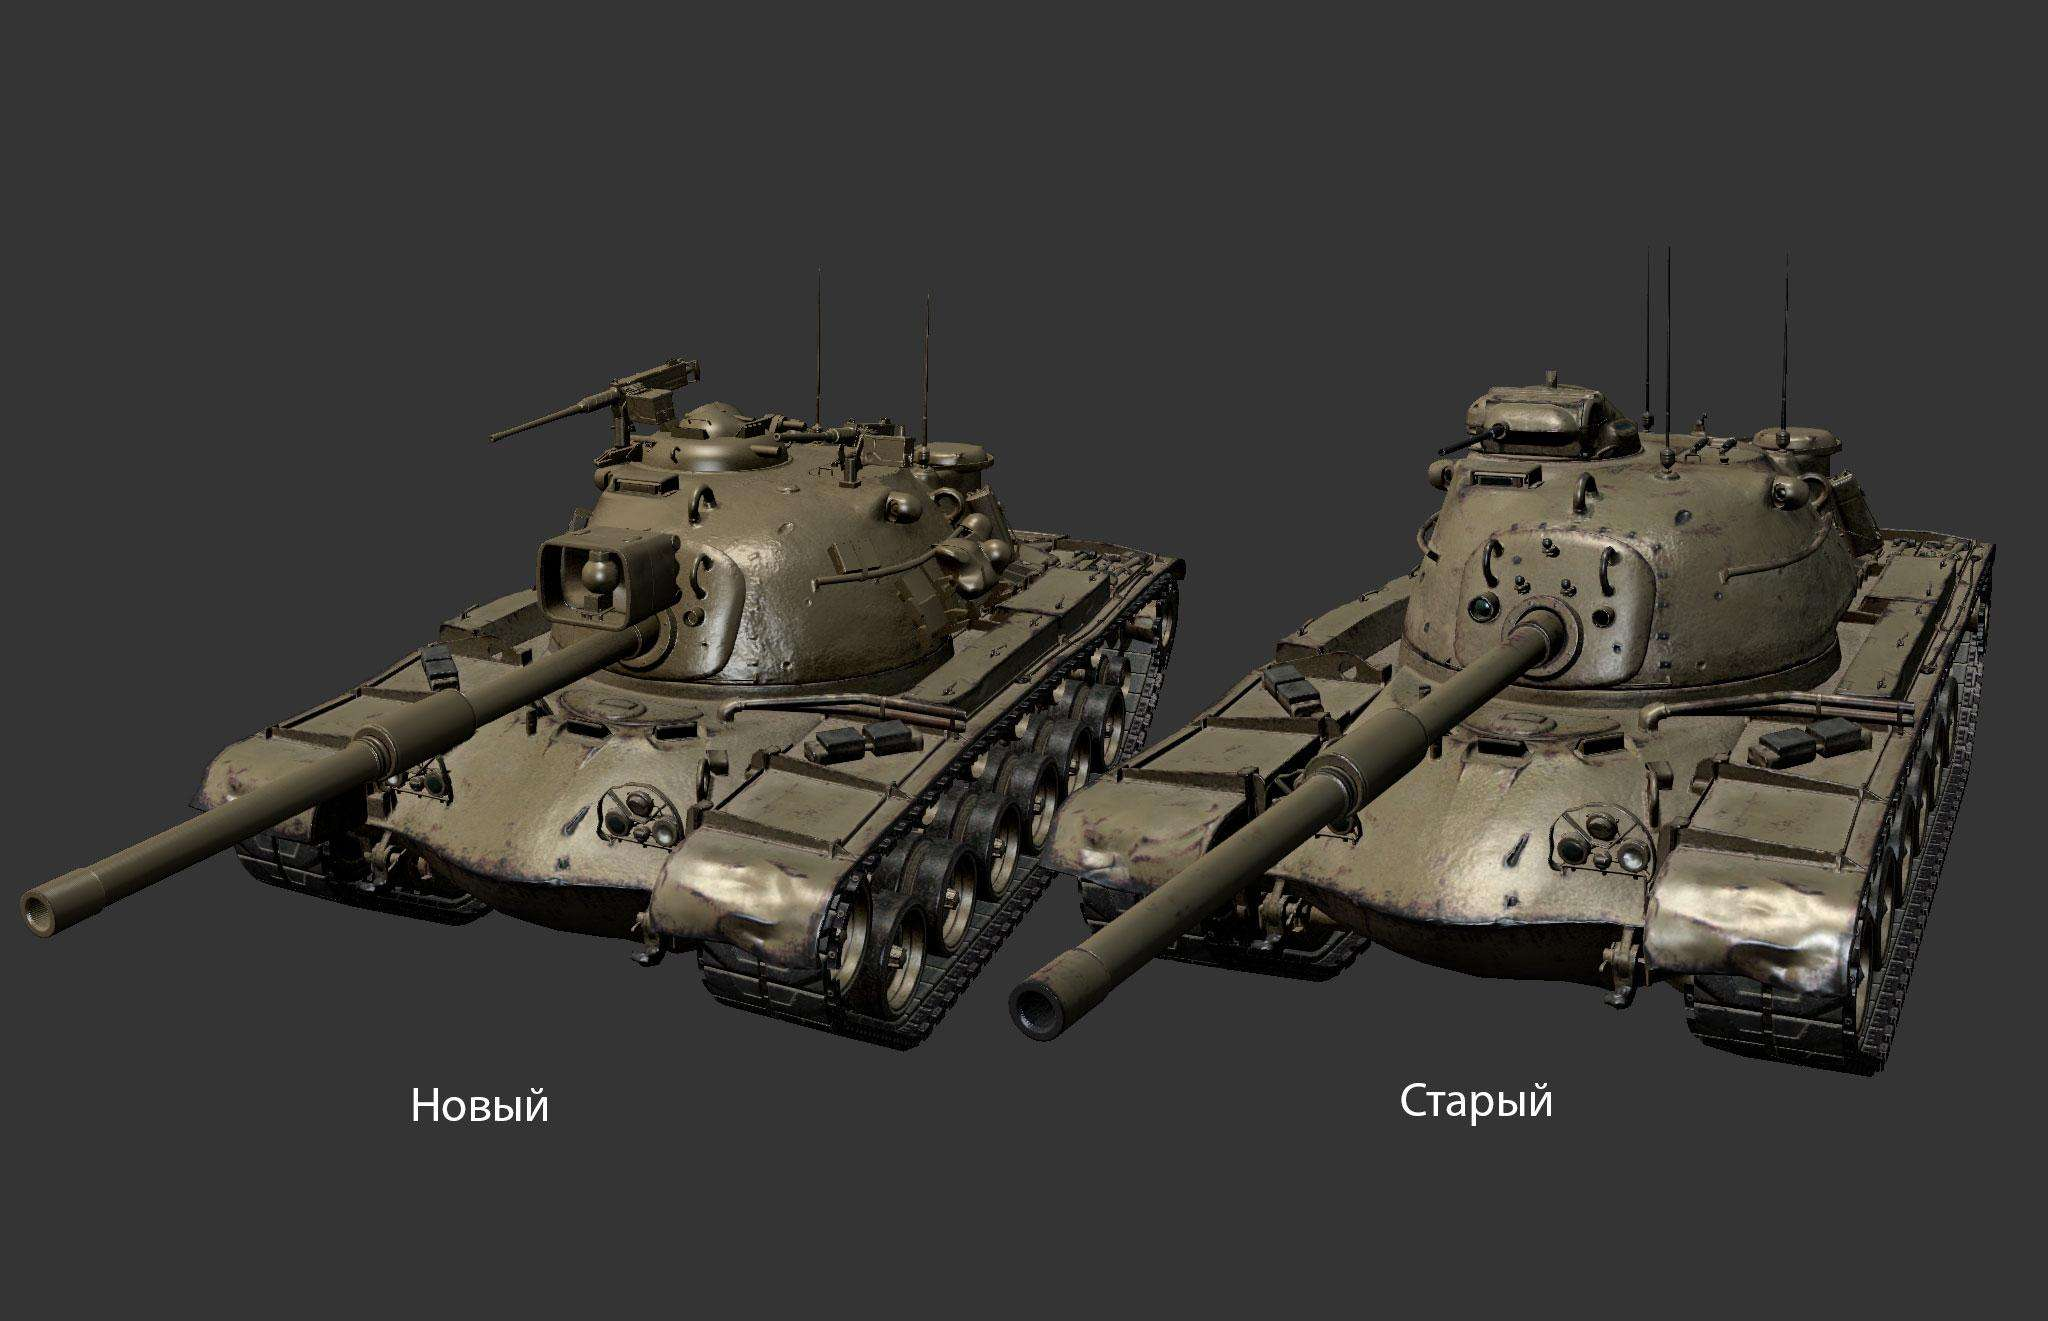 Статистика игрока в world of tanks по цвету